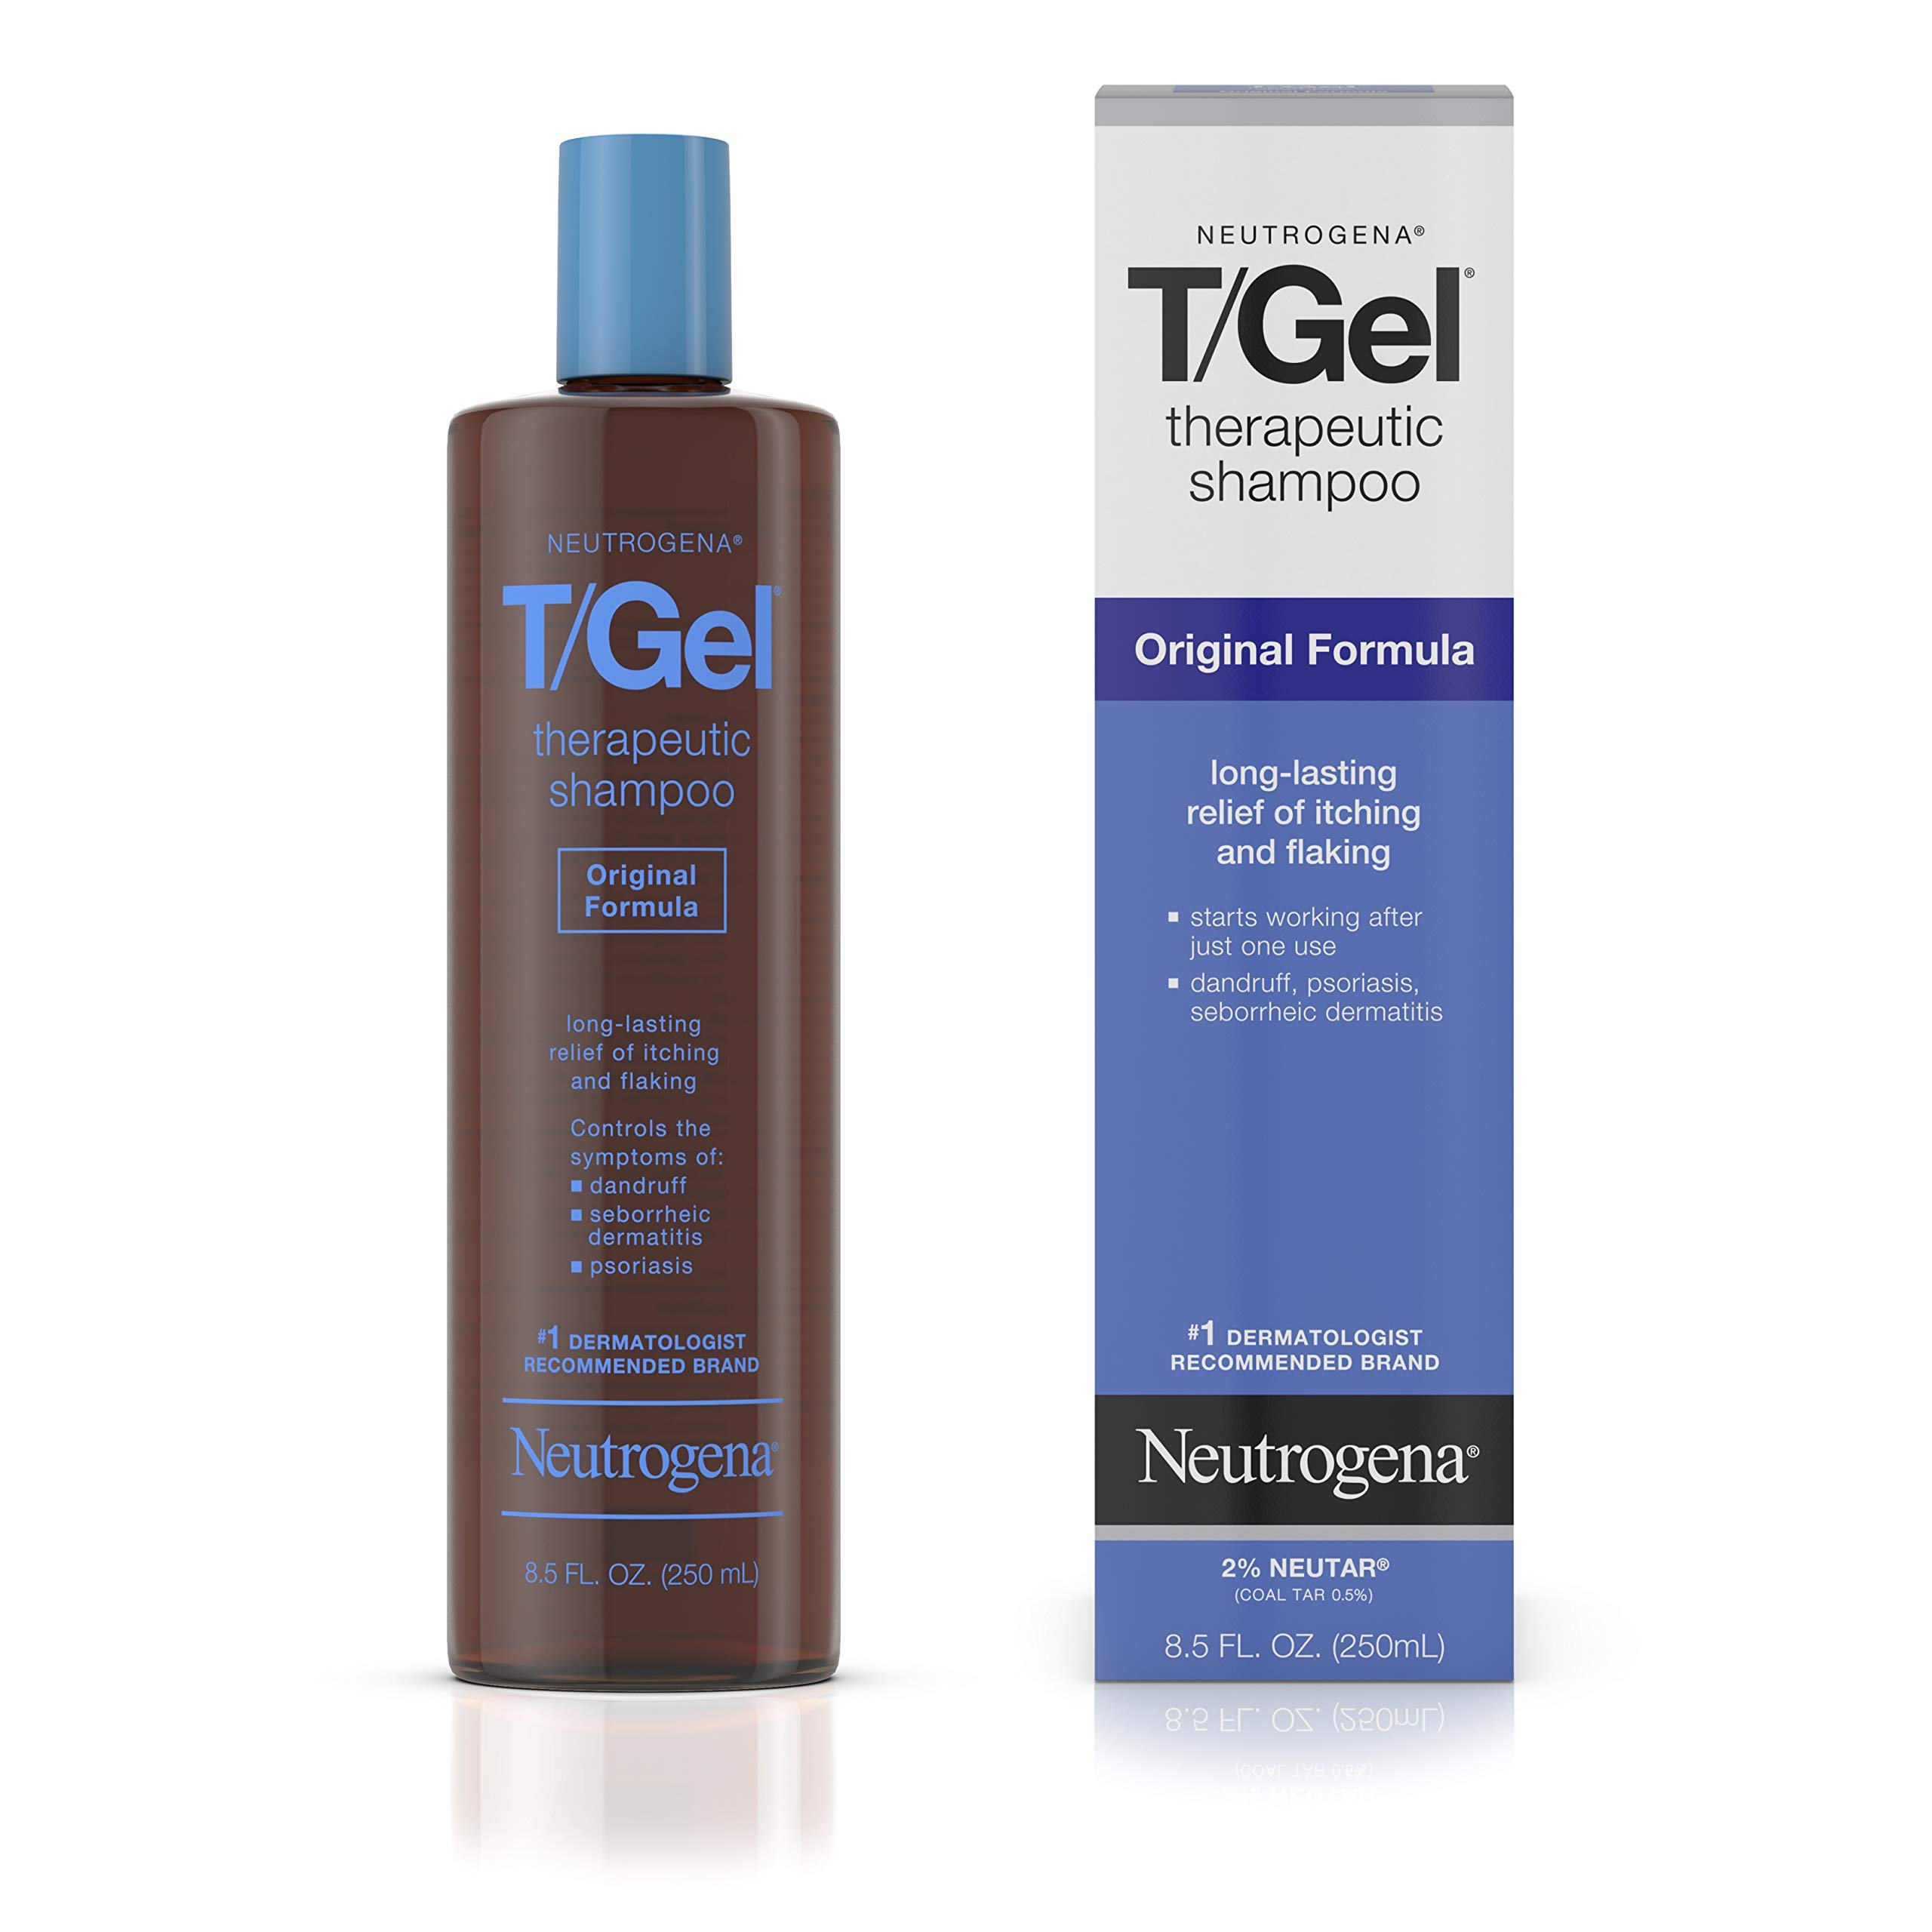 Neutrogena T/Gel Therapeutic Shampoo Original Formula, Anti-Dandruff Treatment for Long-Lasting Relief of Itching and Flaking Scalp as a Result of Psoriasis & Seborrheic Dermatitis, 8.5 fl oz (2 Pack) by Neutrogena